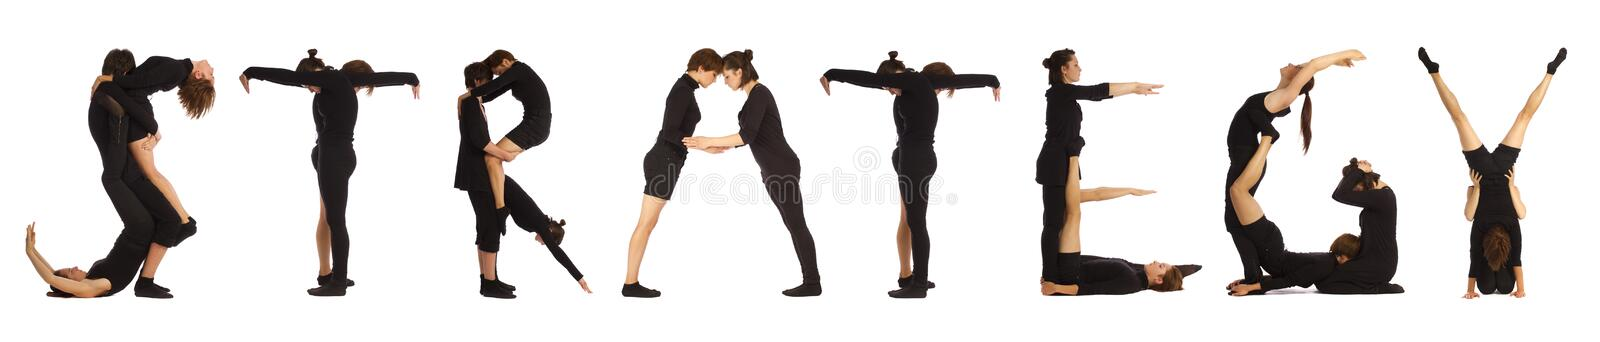 Download Black Dressed People Forming STRATEGY Word Stock Photo - Image: 96696264